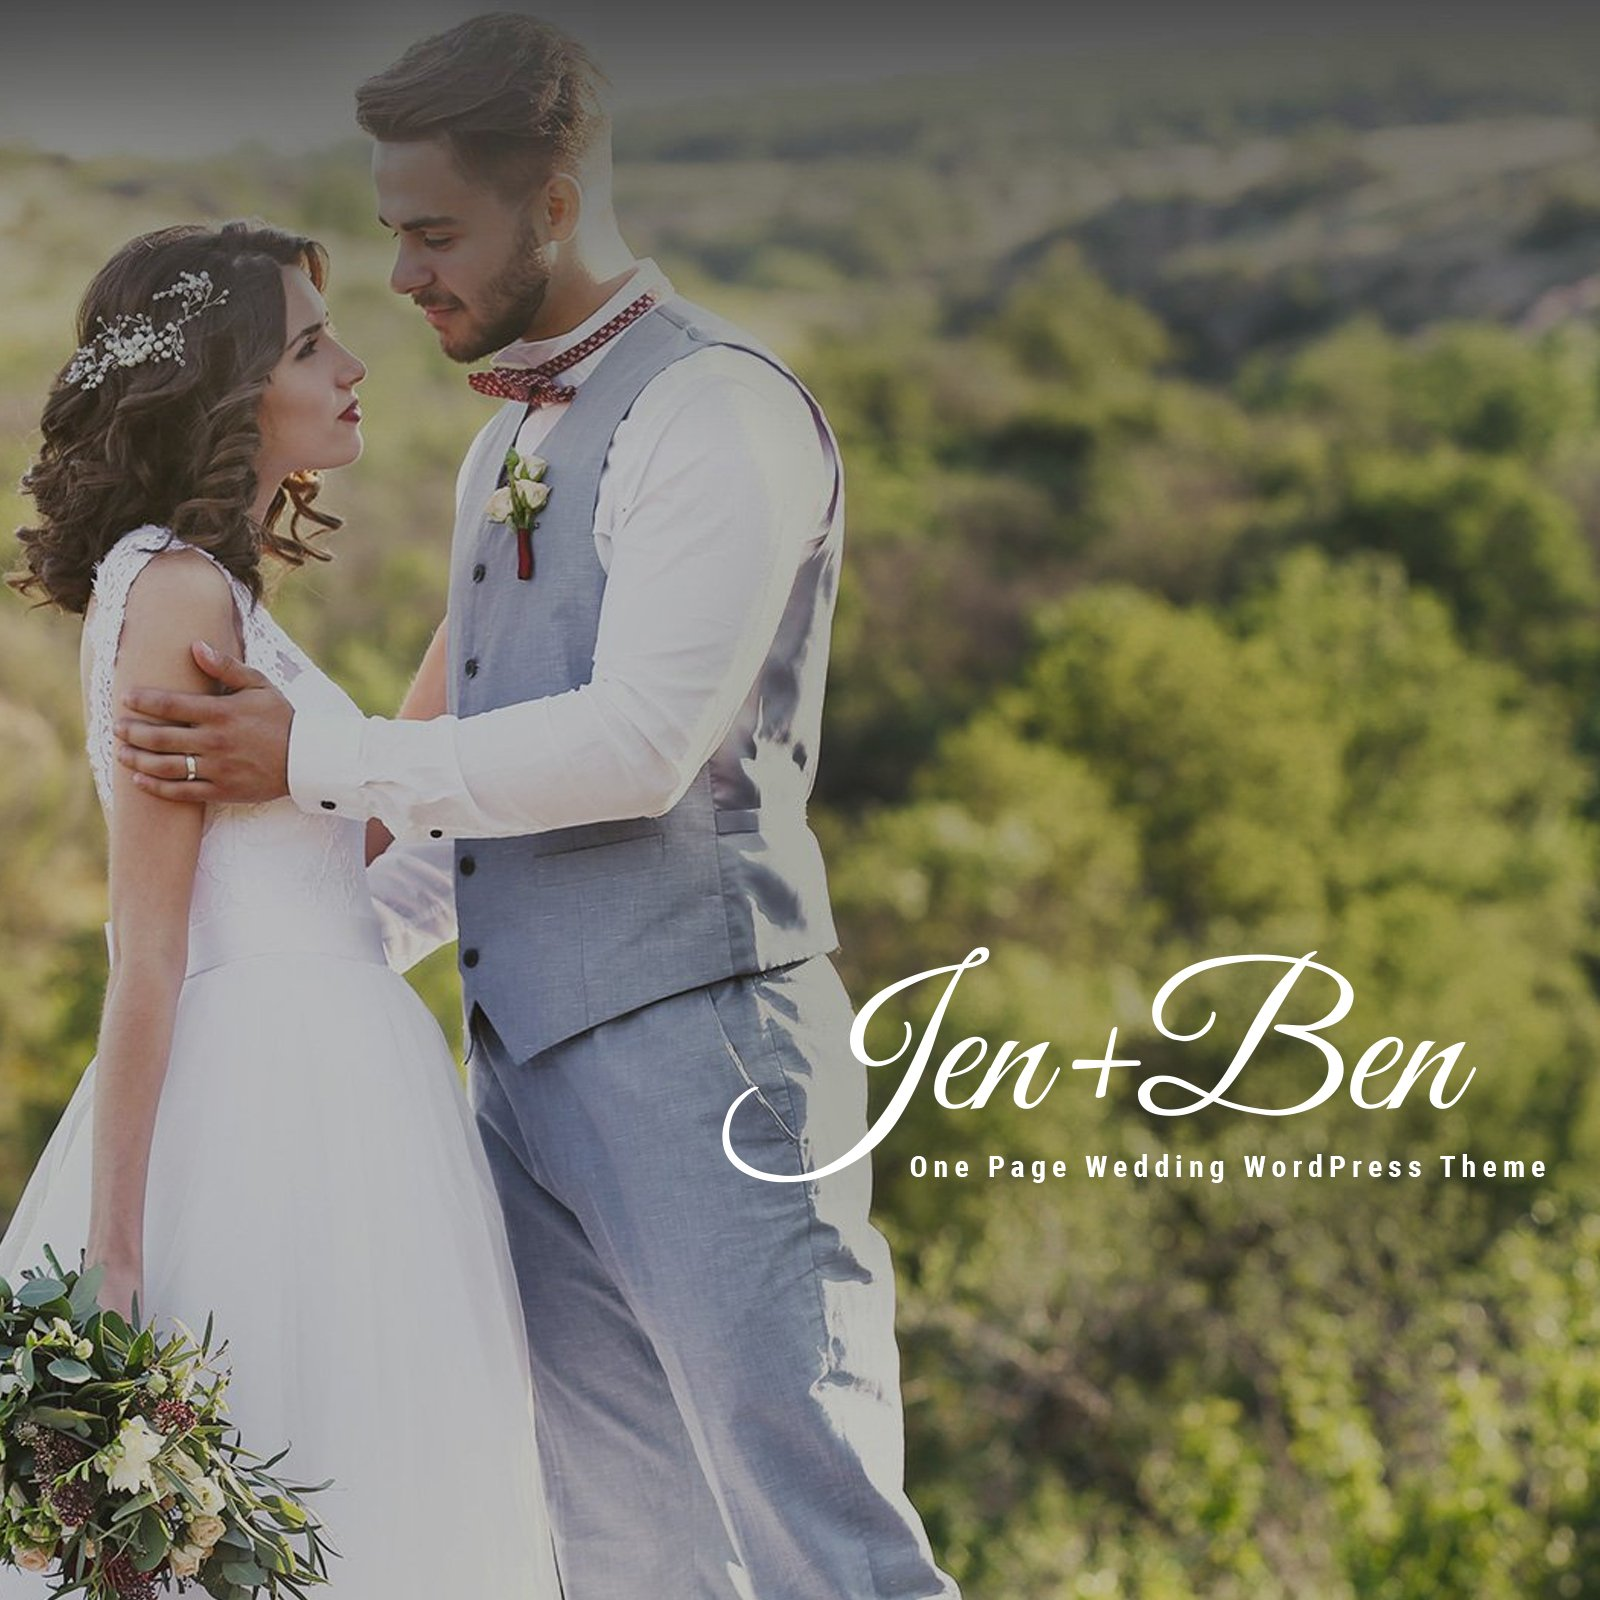 Jen+Ben - One Page Wedding WordPress Theme - screenshot